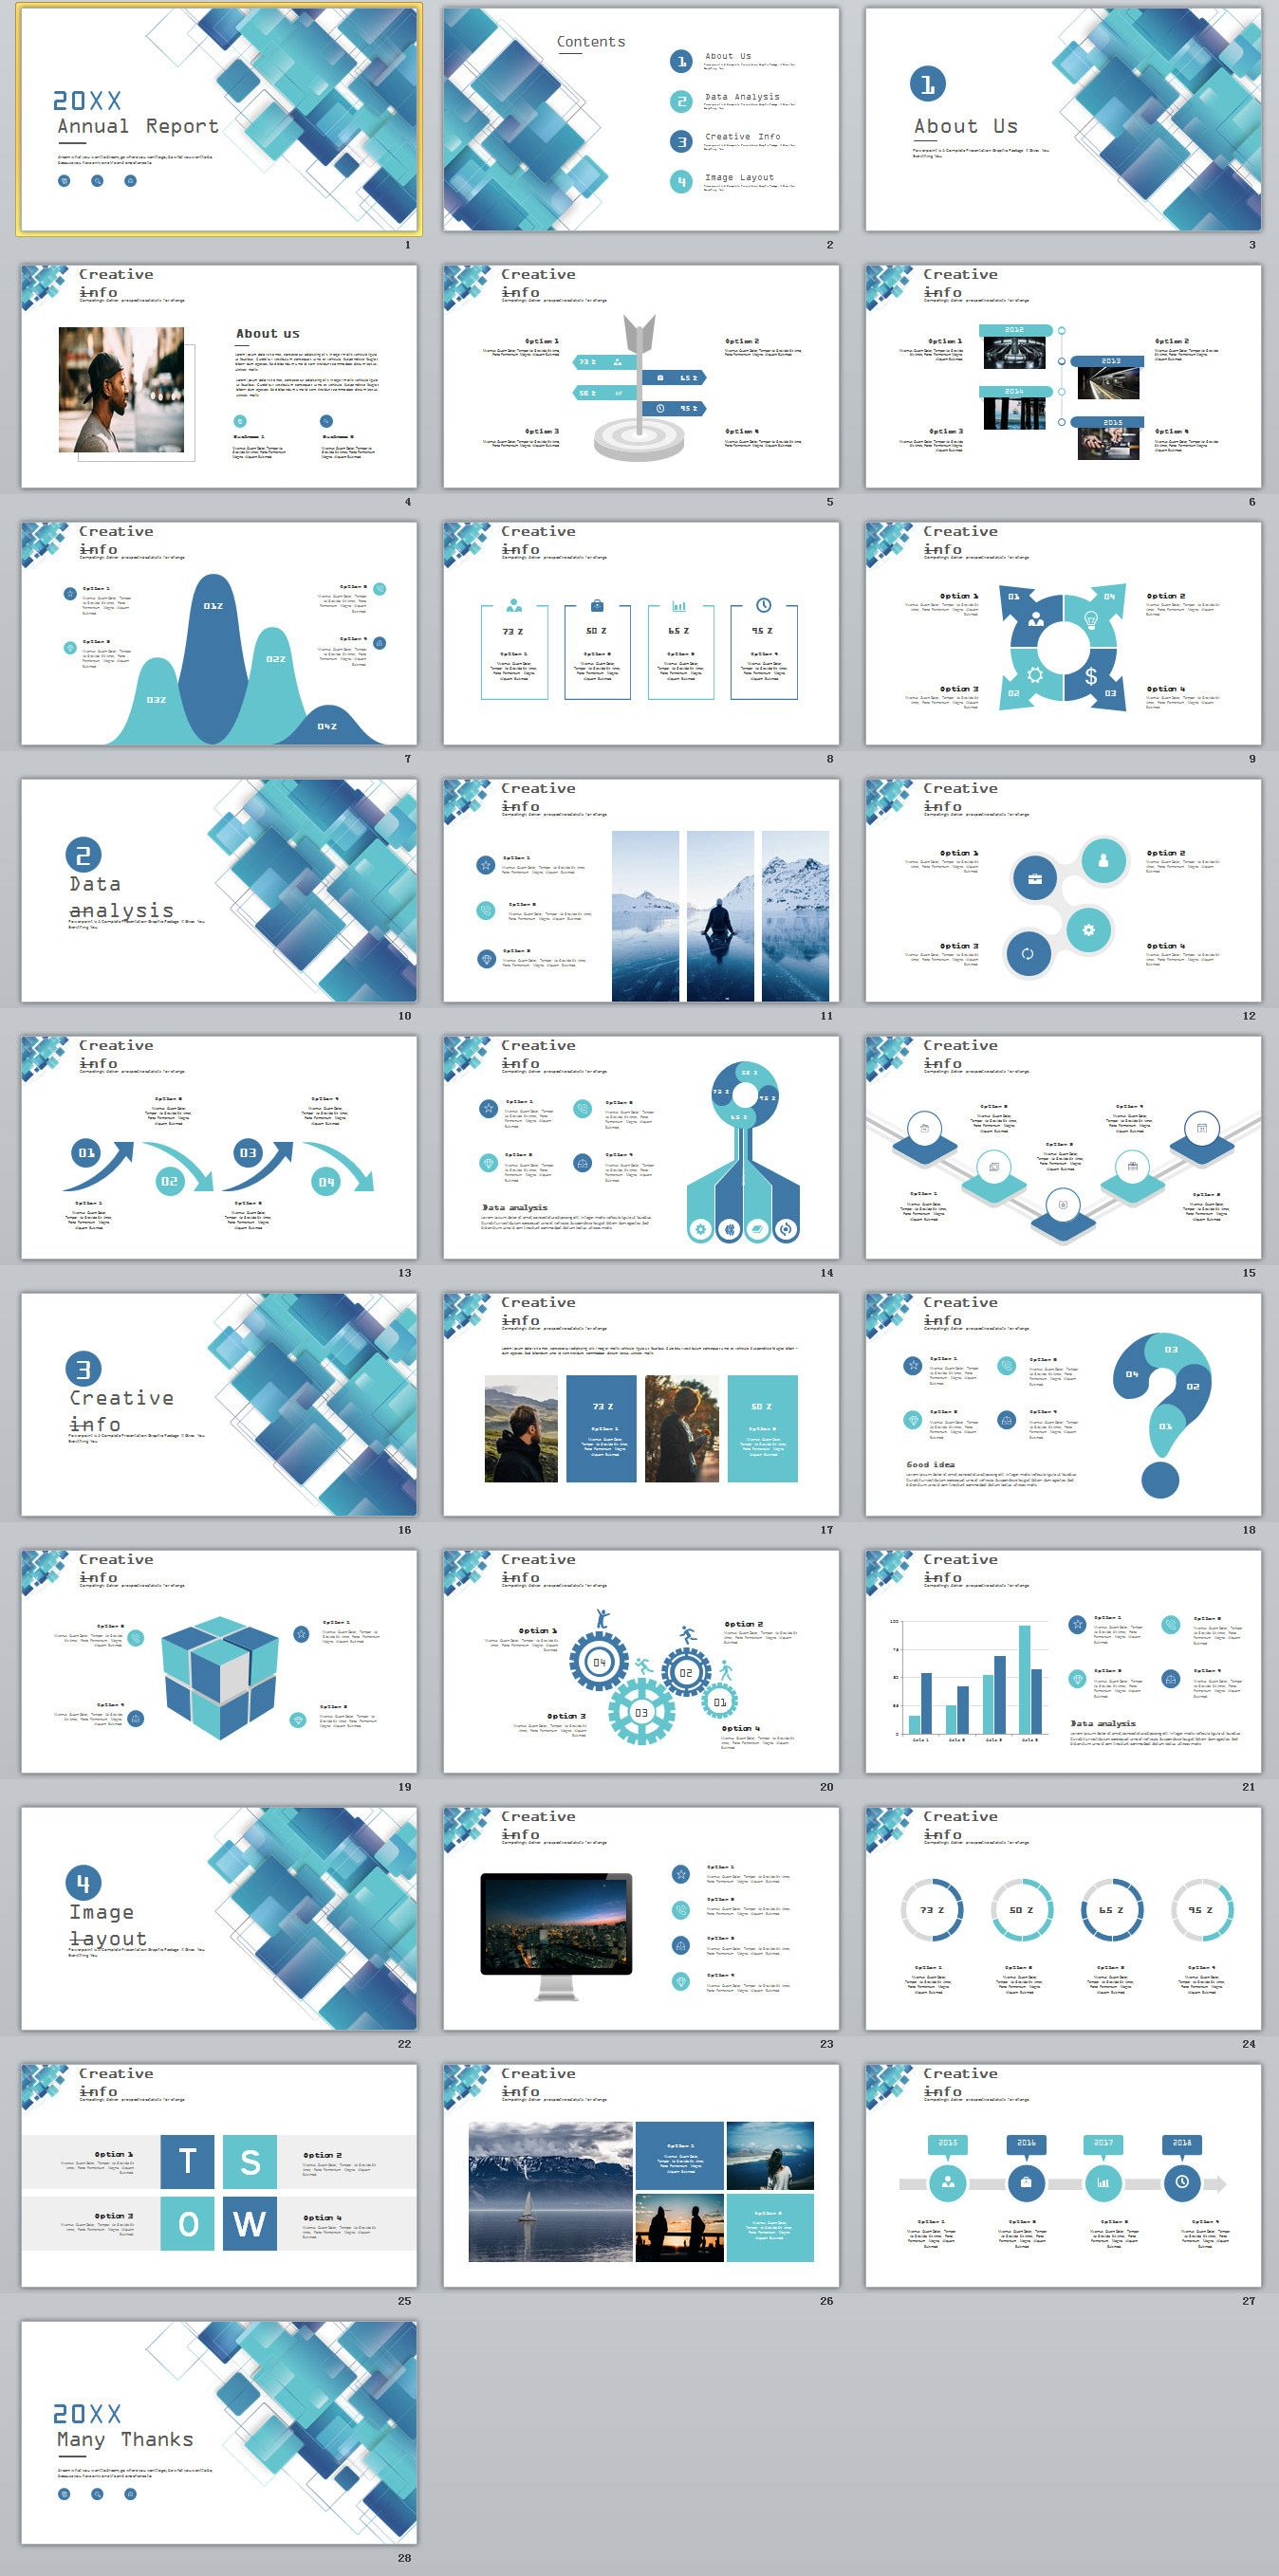 28 blue swot report charts powerpoint template on behance 28 blue swot report charts powerpoint template on behance powerpoint templates presentation toneelgroepblik Images